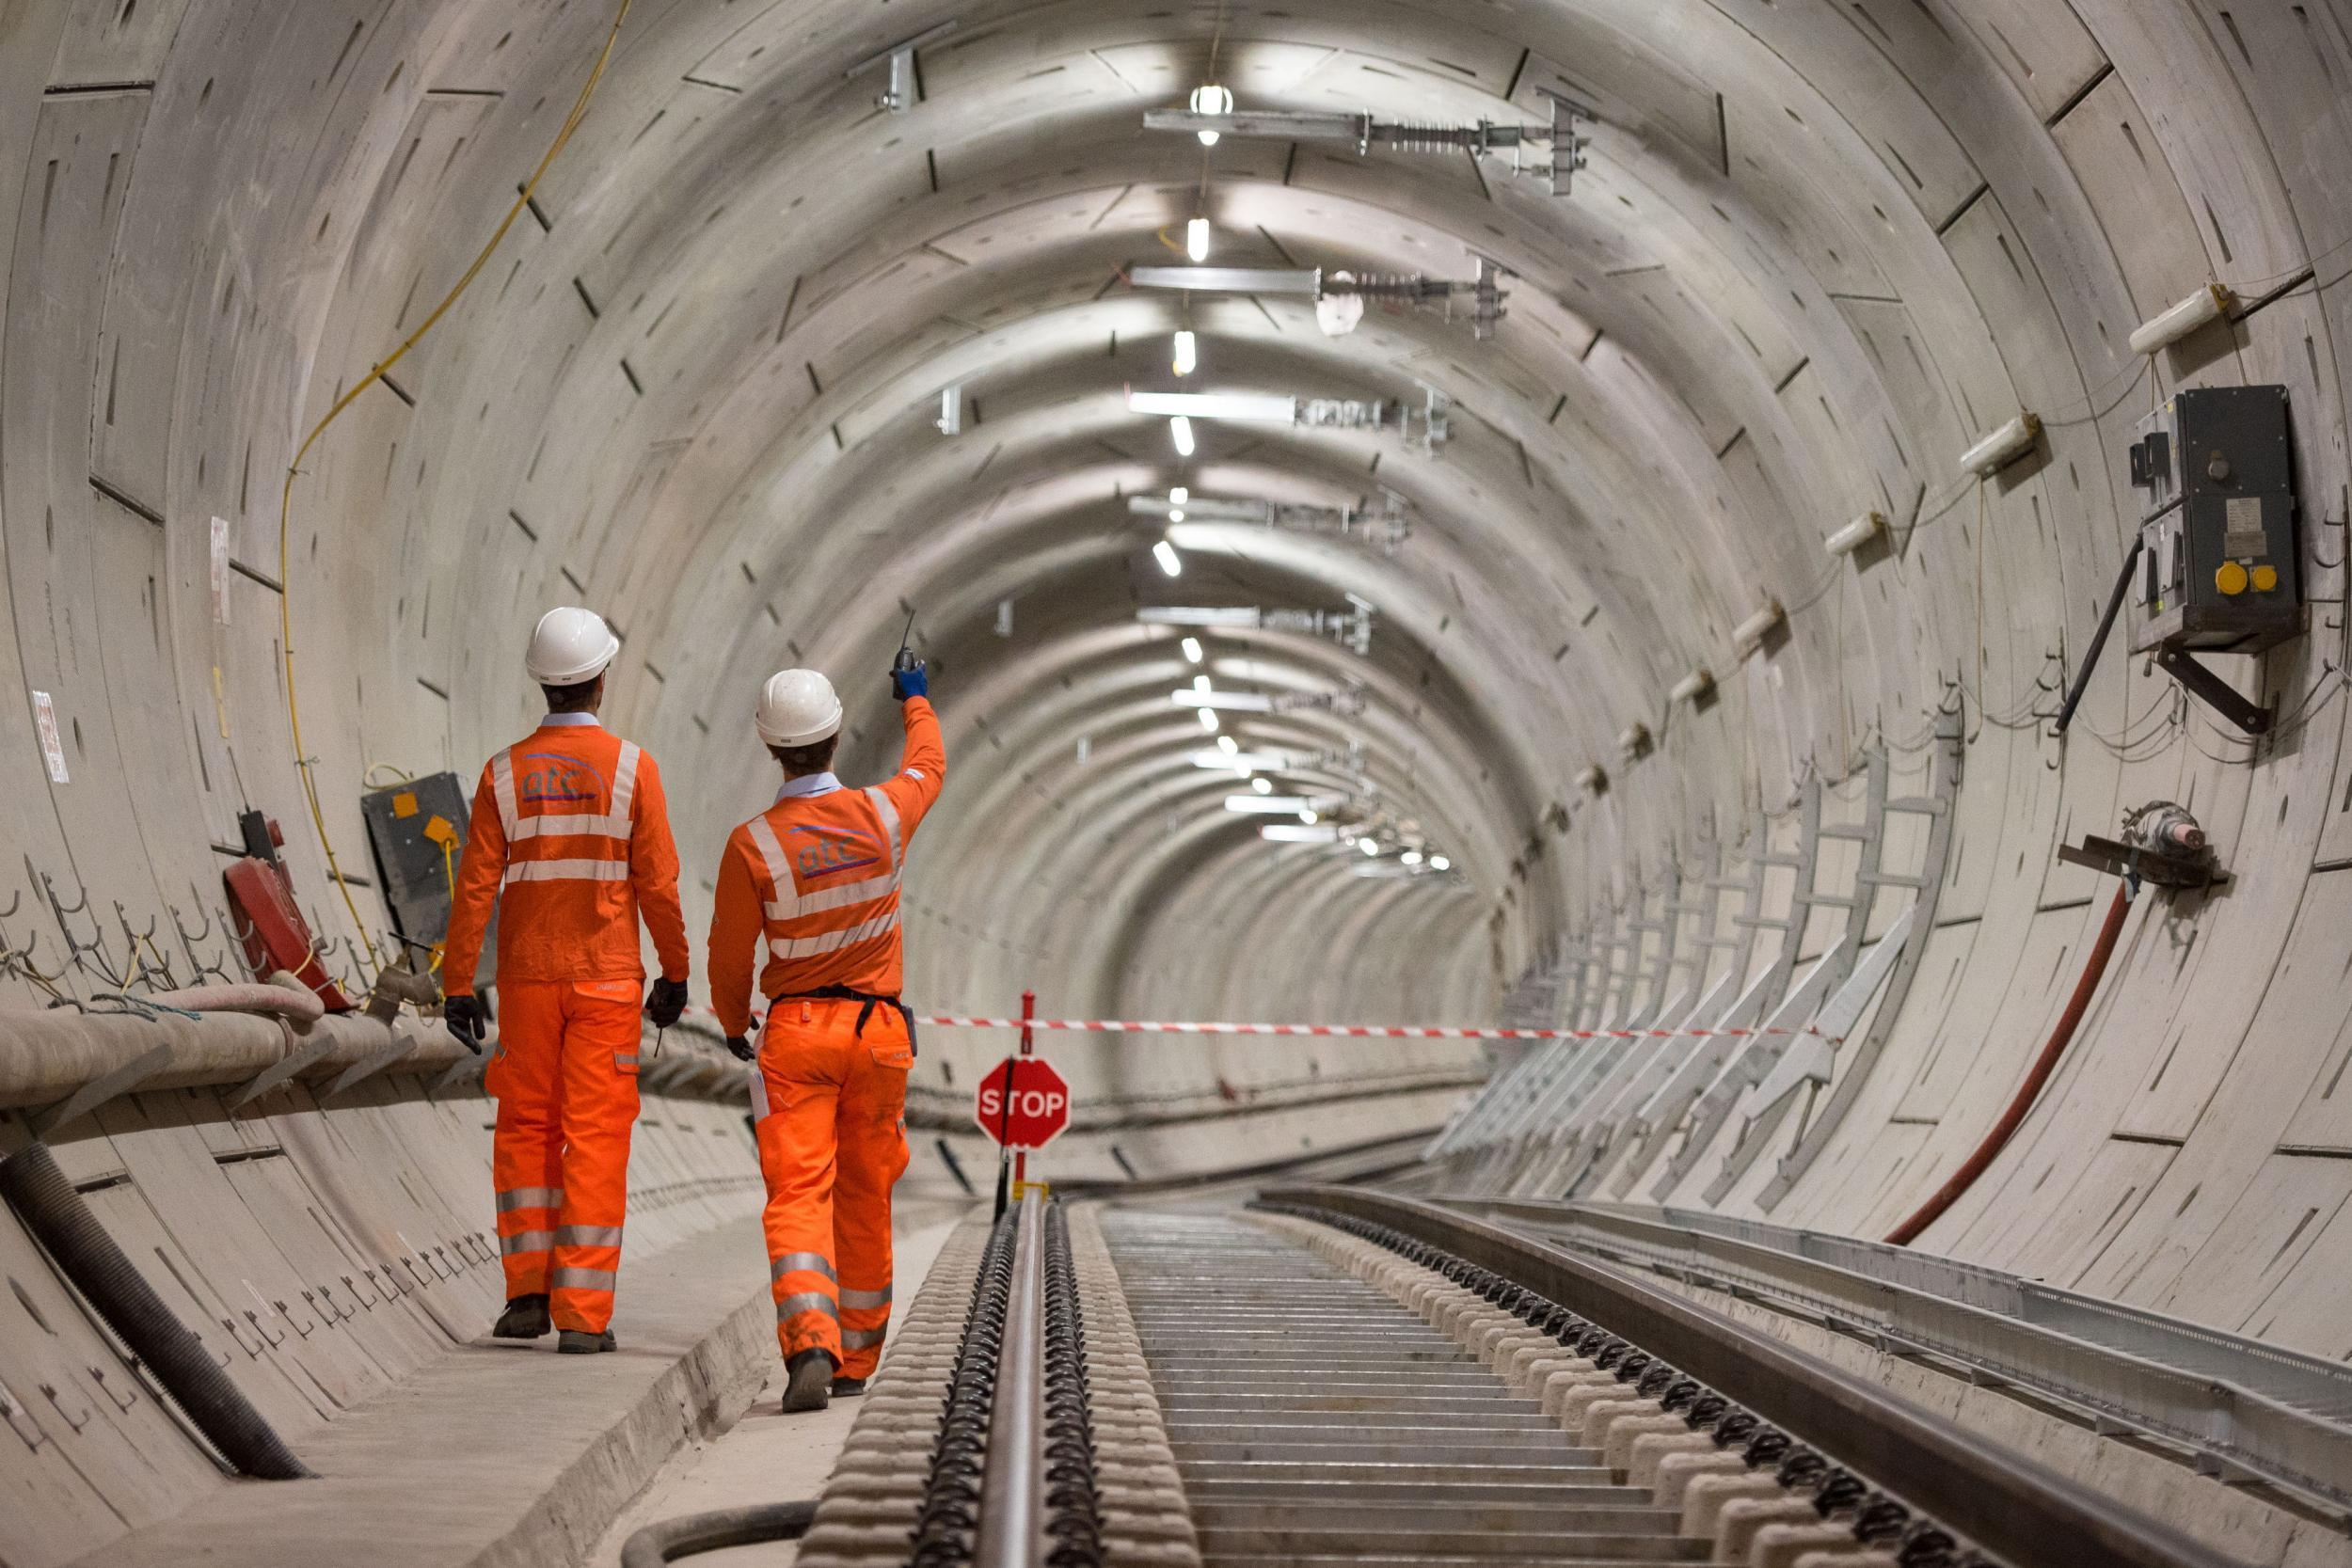 Government needs to spend additional £20bn on infrastructure each year, says think tank